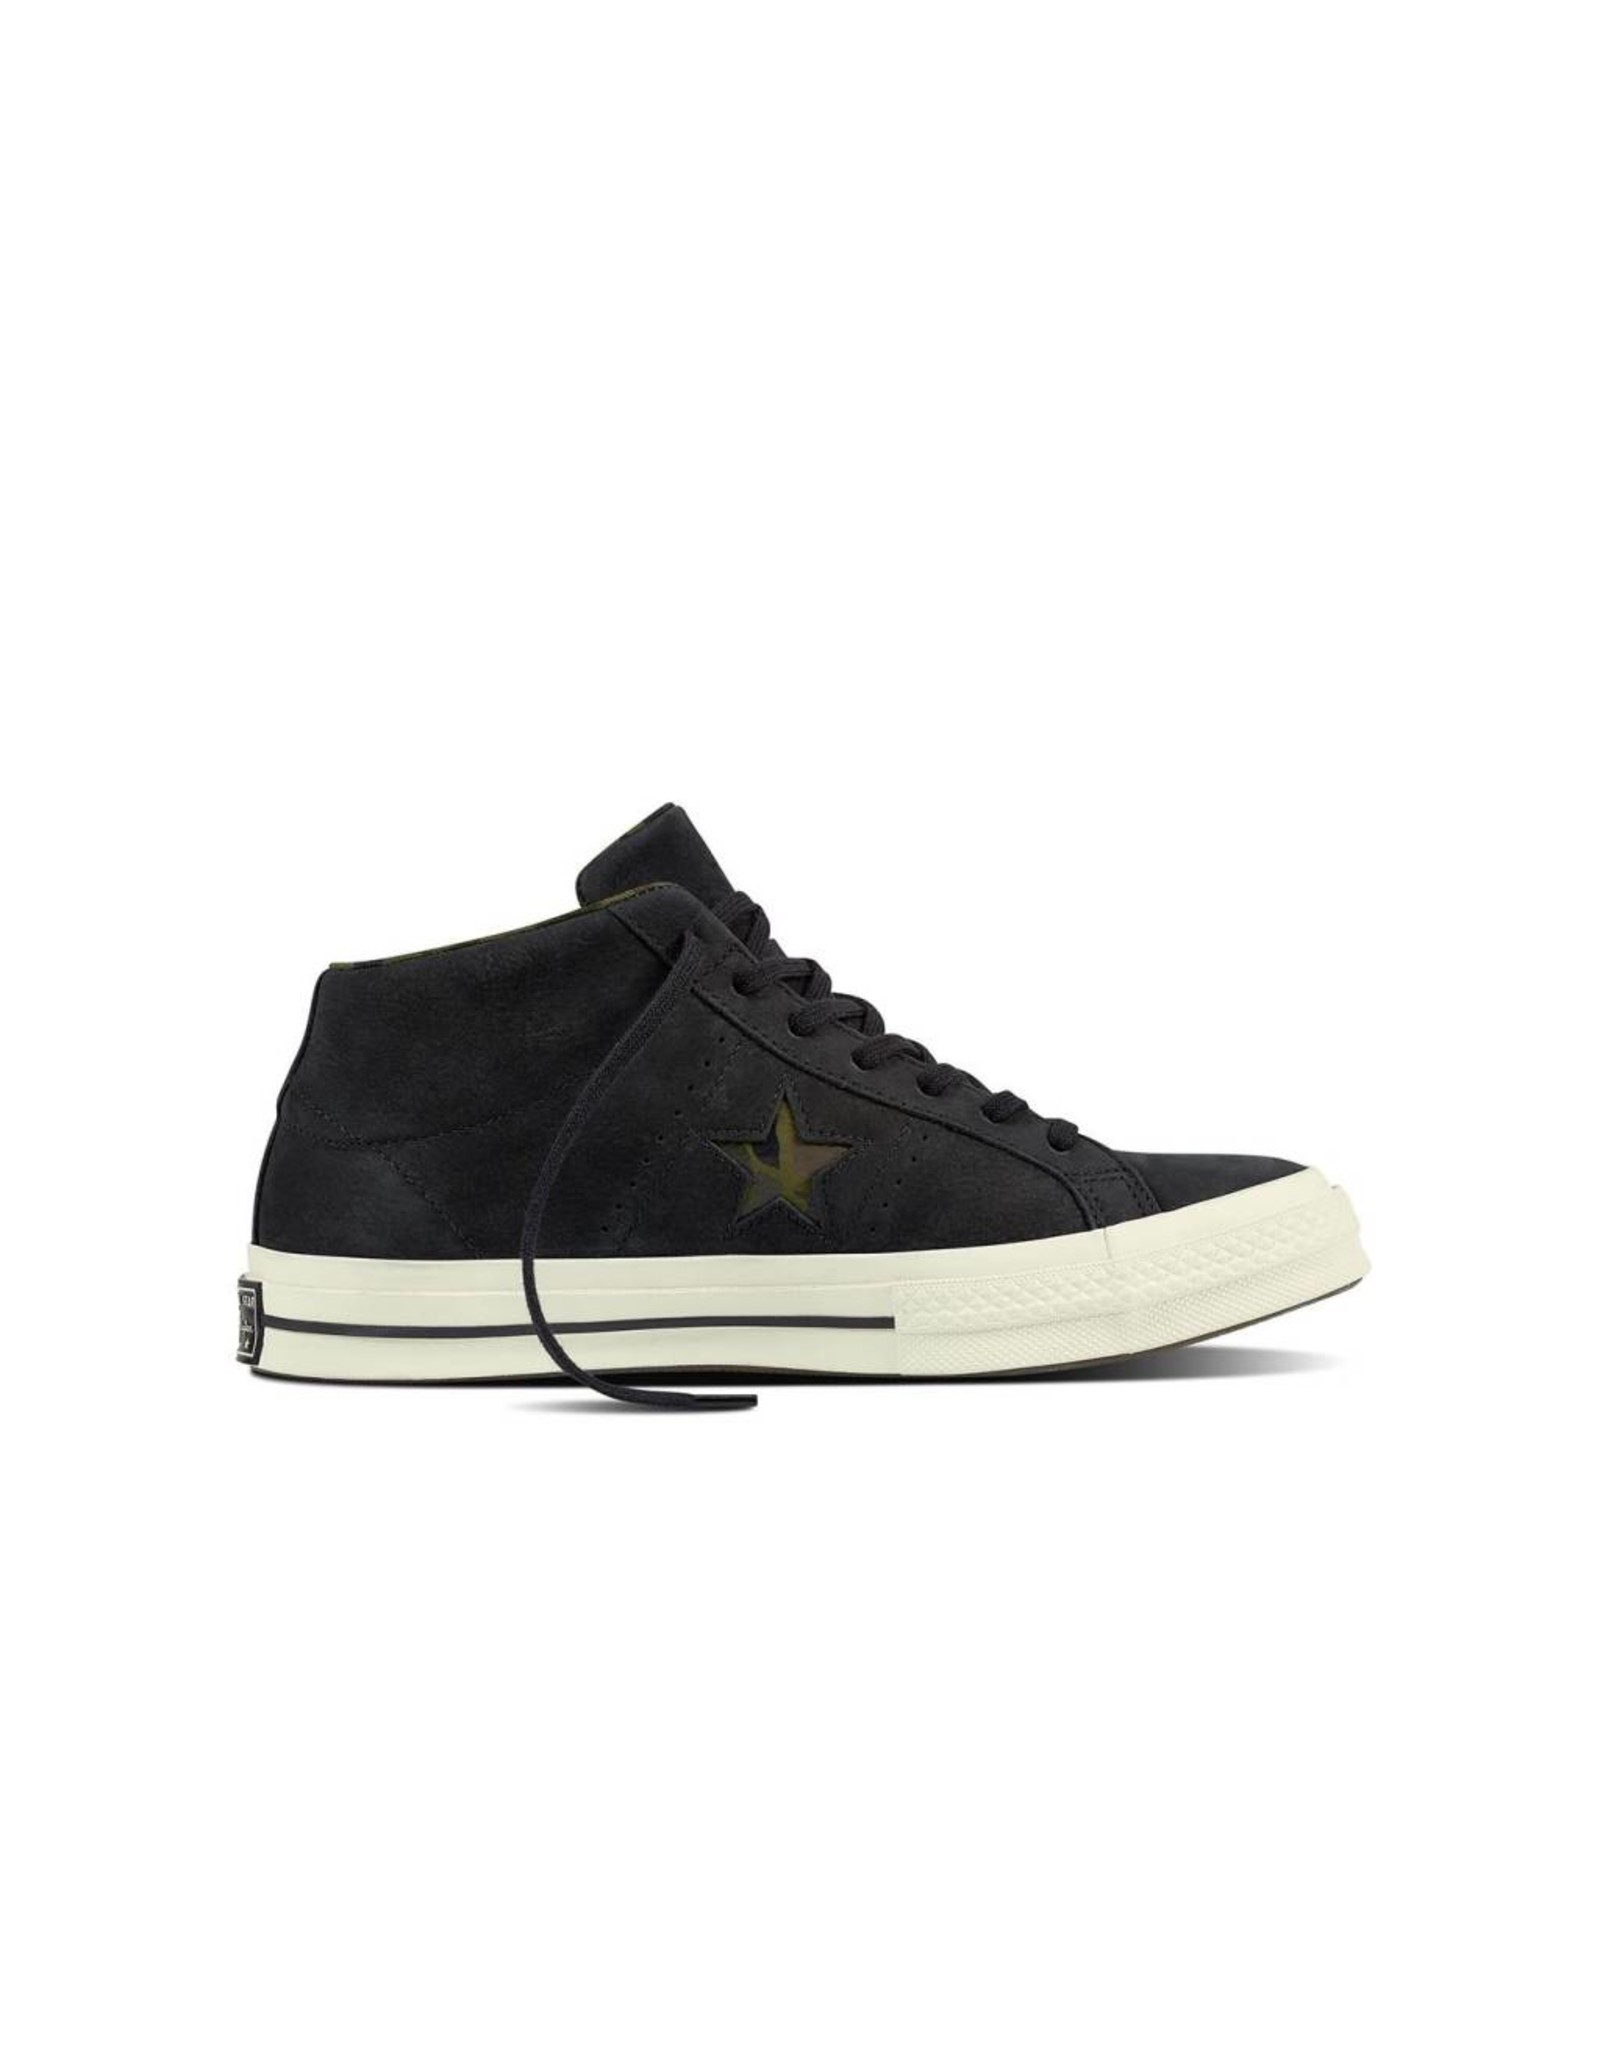 CONVERSE ONE STAR MID CUIR BLACK/EGRET/HERBAL C887BH-159747C